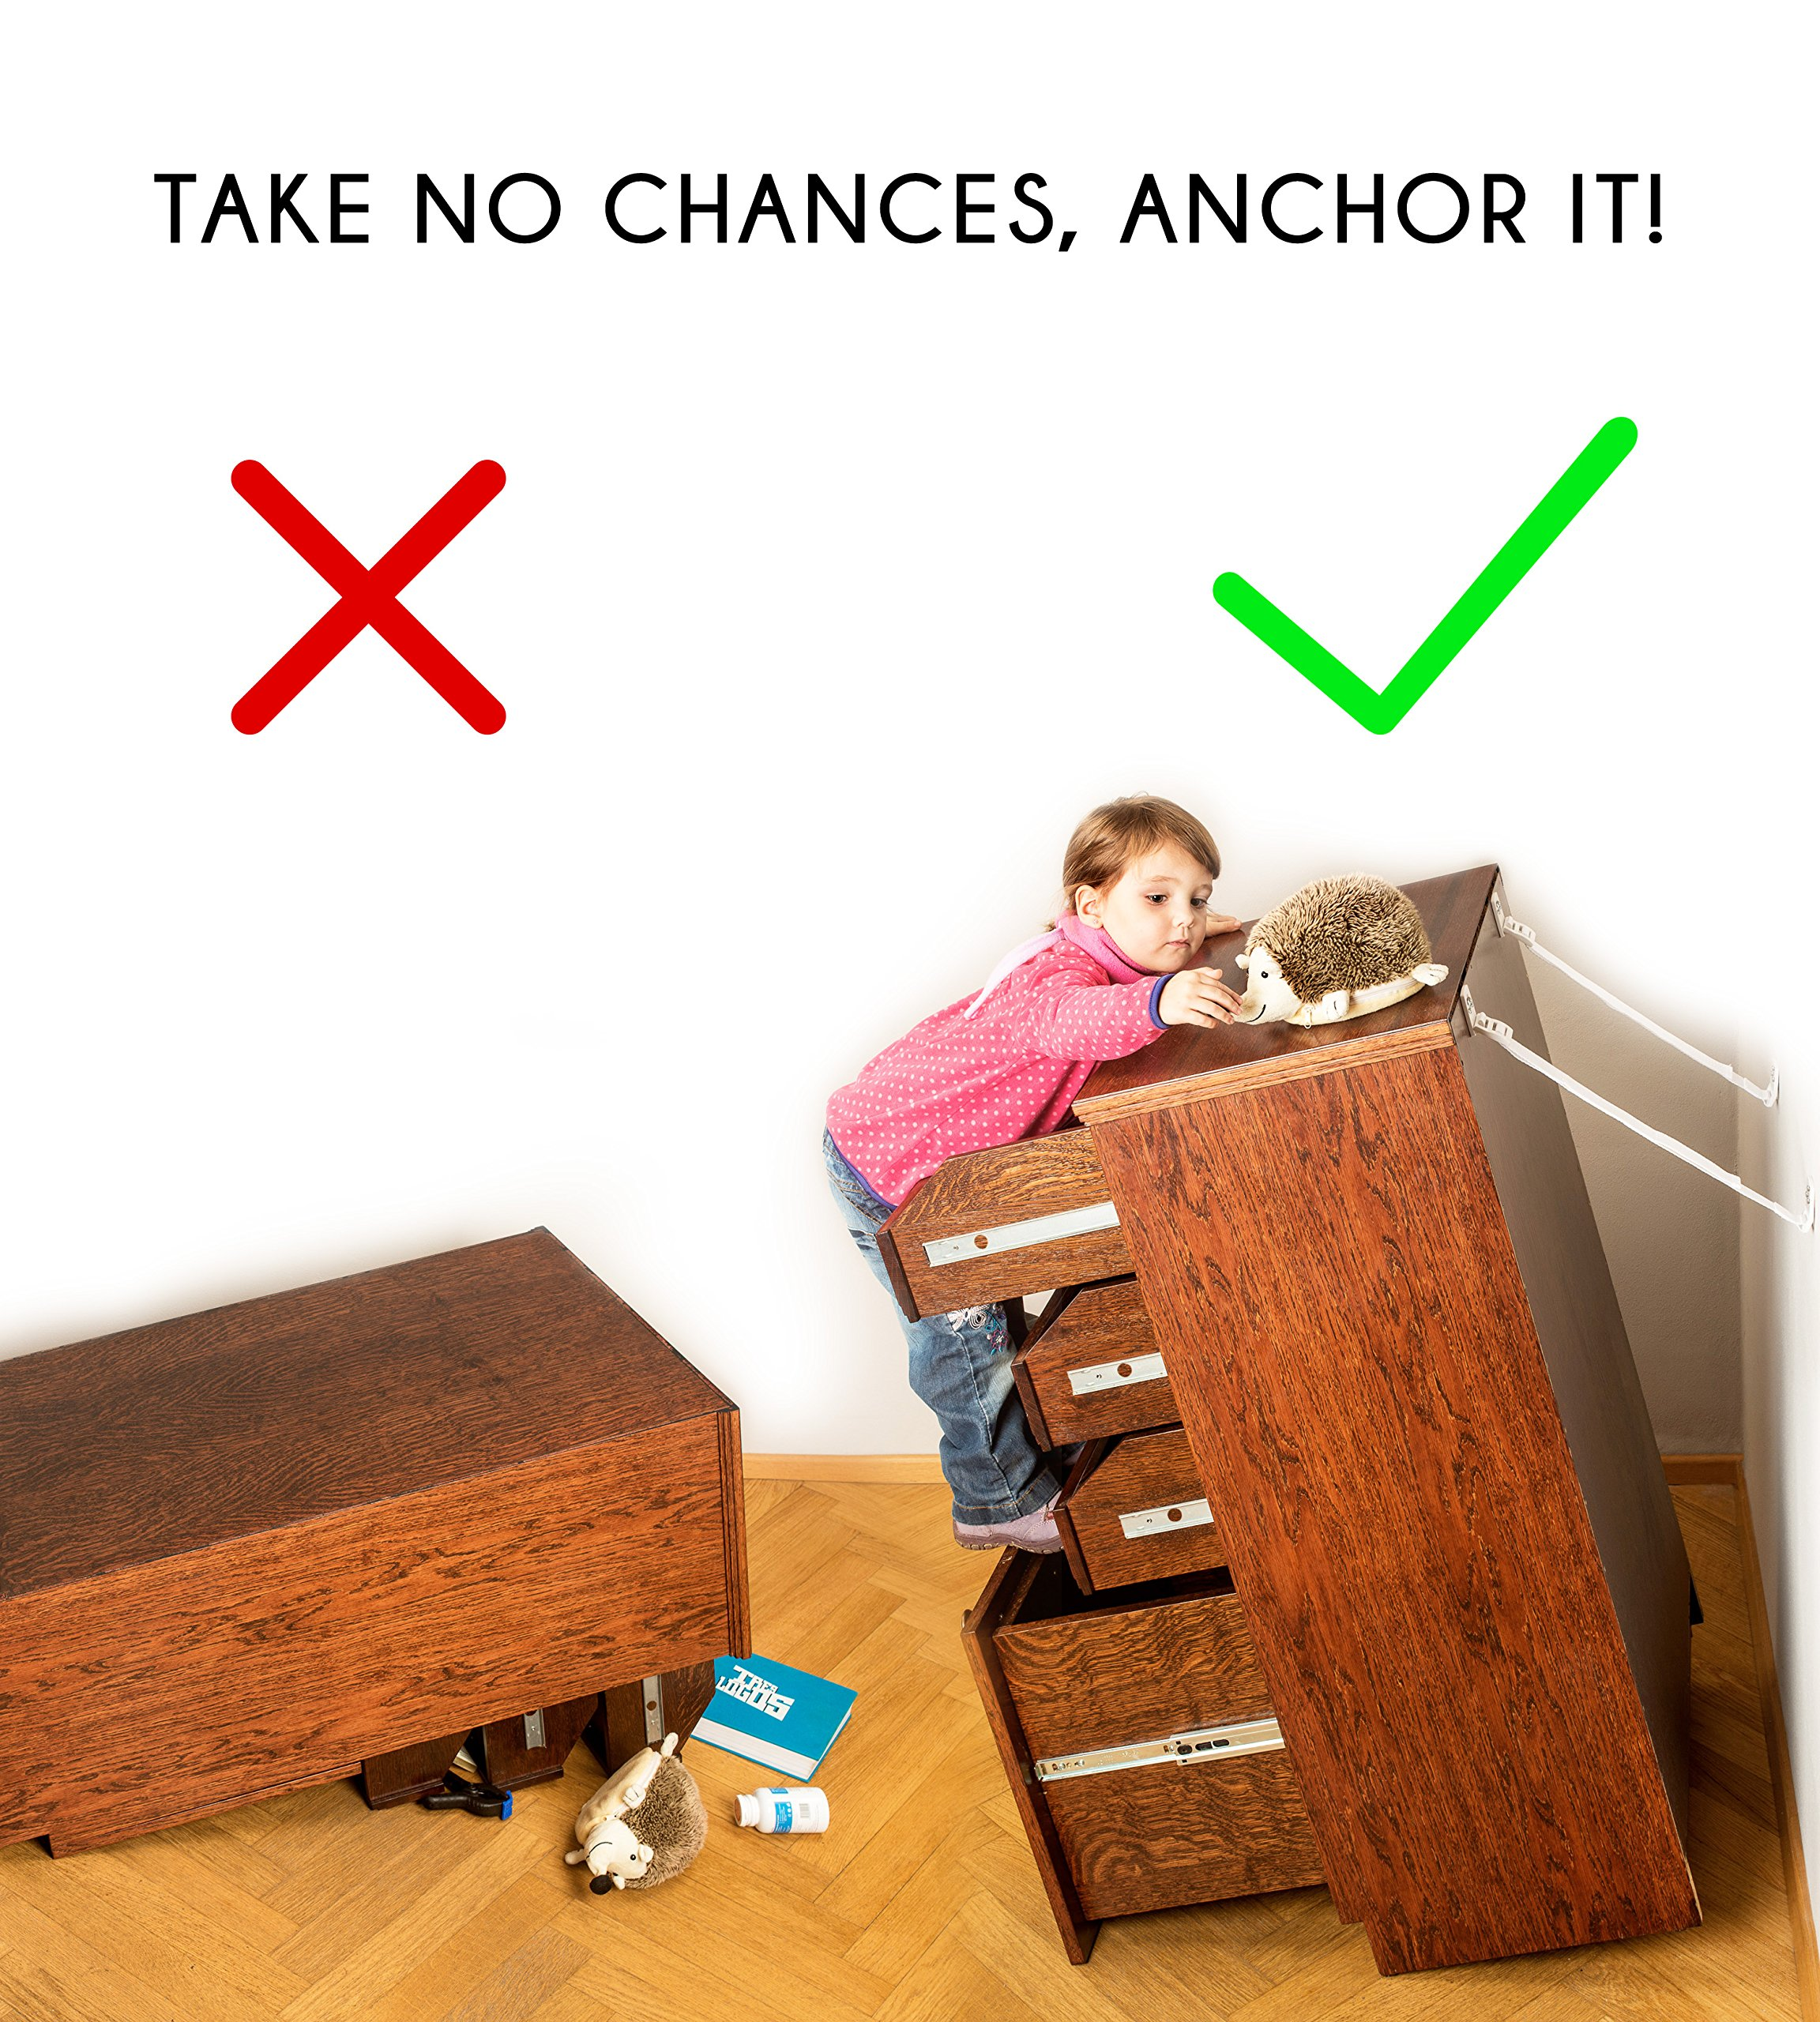 Boxiki Kids Adjustable Anti-Tip Furniture Anchors for Baby Proofing and Dresser Anchoring Kit. 8 PC Wall Anchors and Earthquake Straps. Baby Safety Kit and Home Safety Furniture Straps. (White) by Boxiki Kids (Image #4)